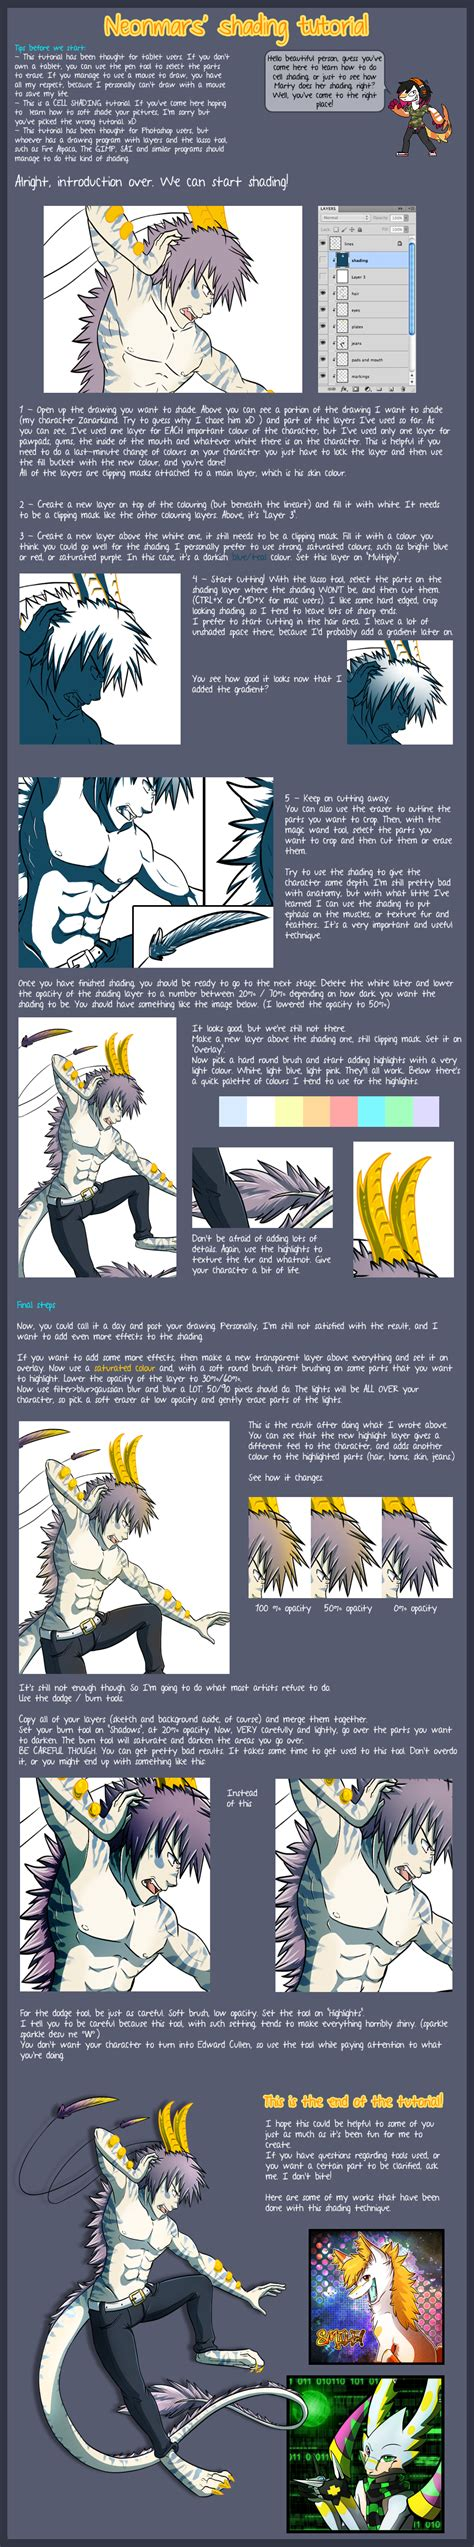 adobe photoshop shading tutorial cell shading tutorial by pandalecko on deviantart